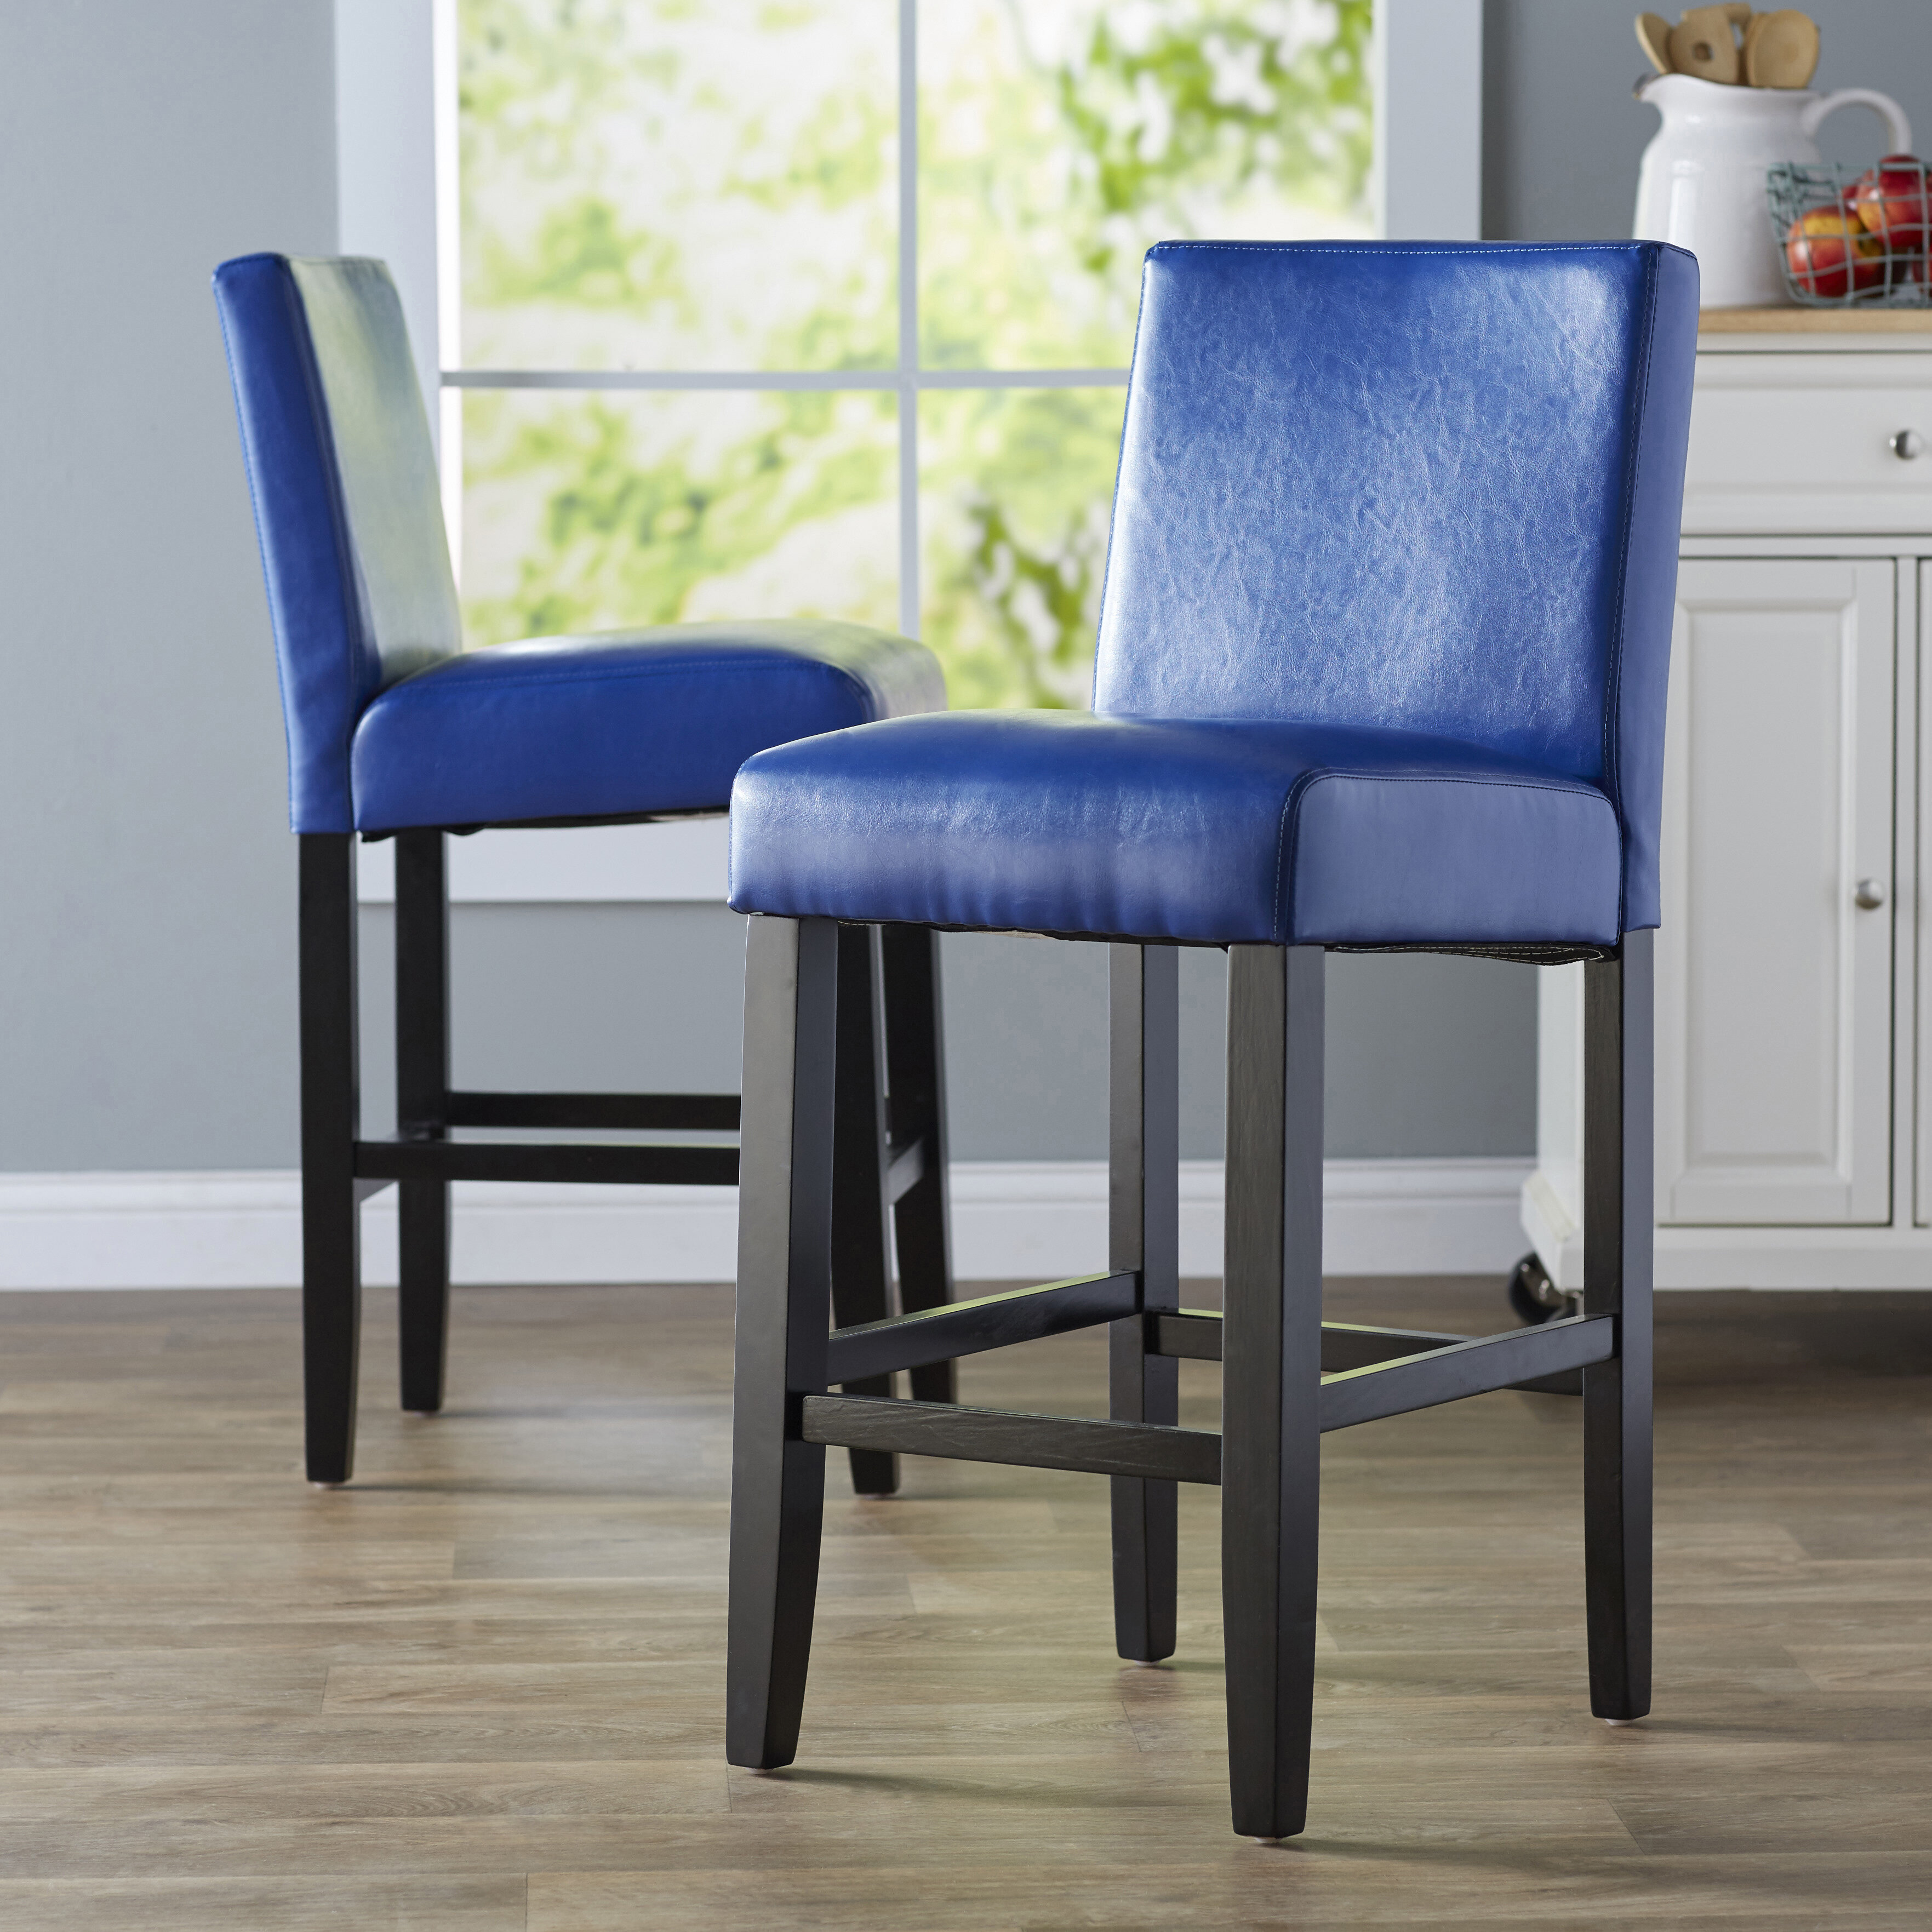 product by blue les architonic stools volar from basic stool en b bar